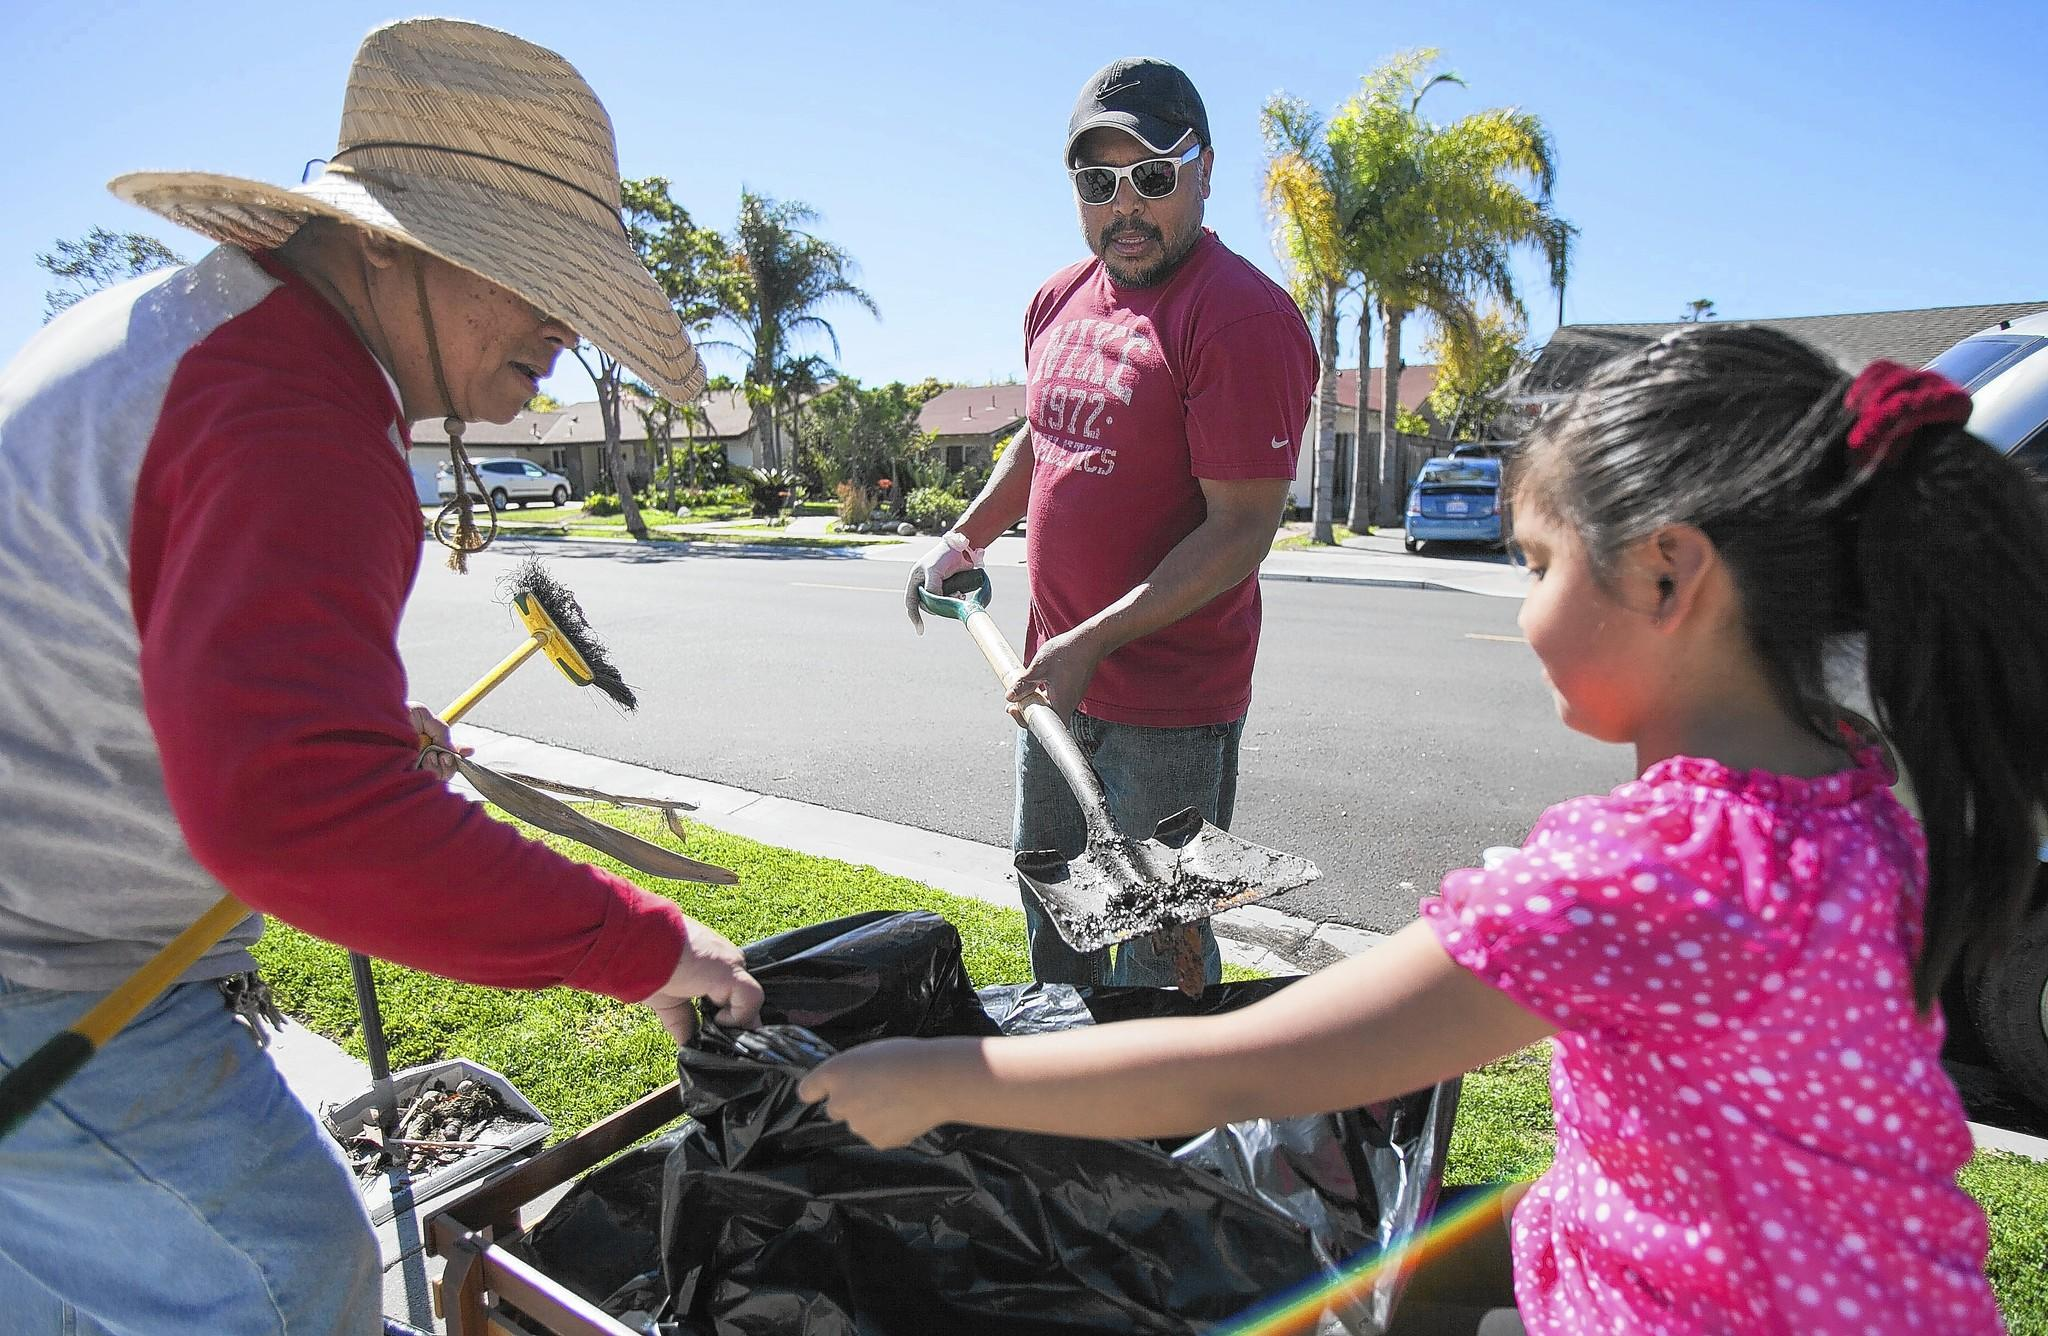 Carlito Franco, left, and Guadalupe Martinez, hold a bag open for Temo Martinez as he scoops up dirt from the curb during a city-sponsored community clean-up day in Costa Mesa on Saturday.